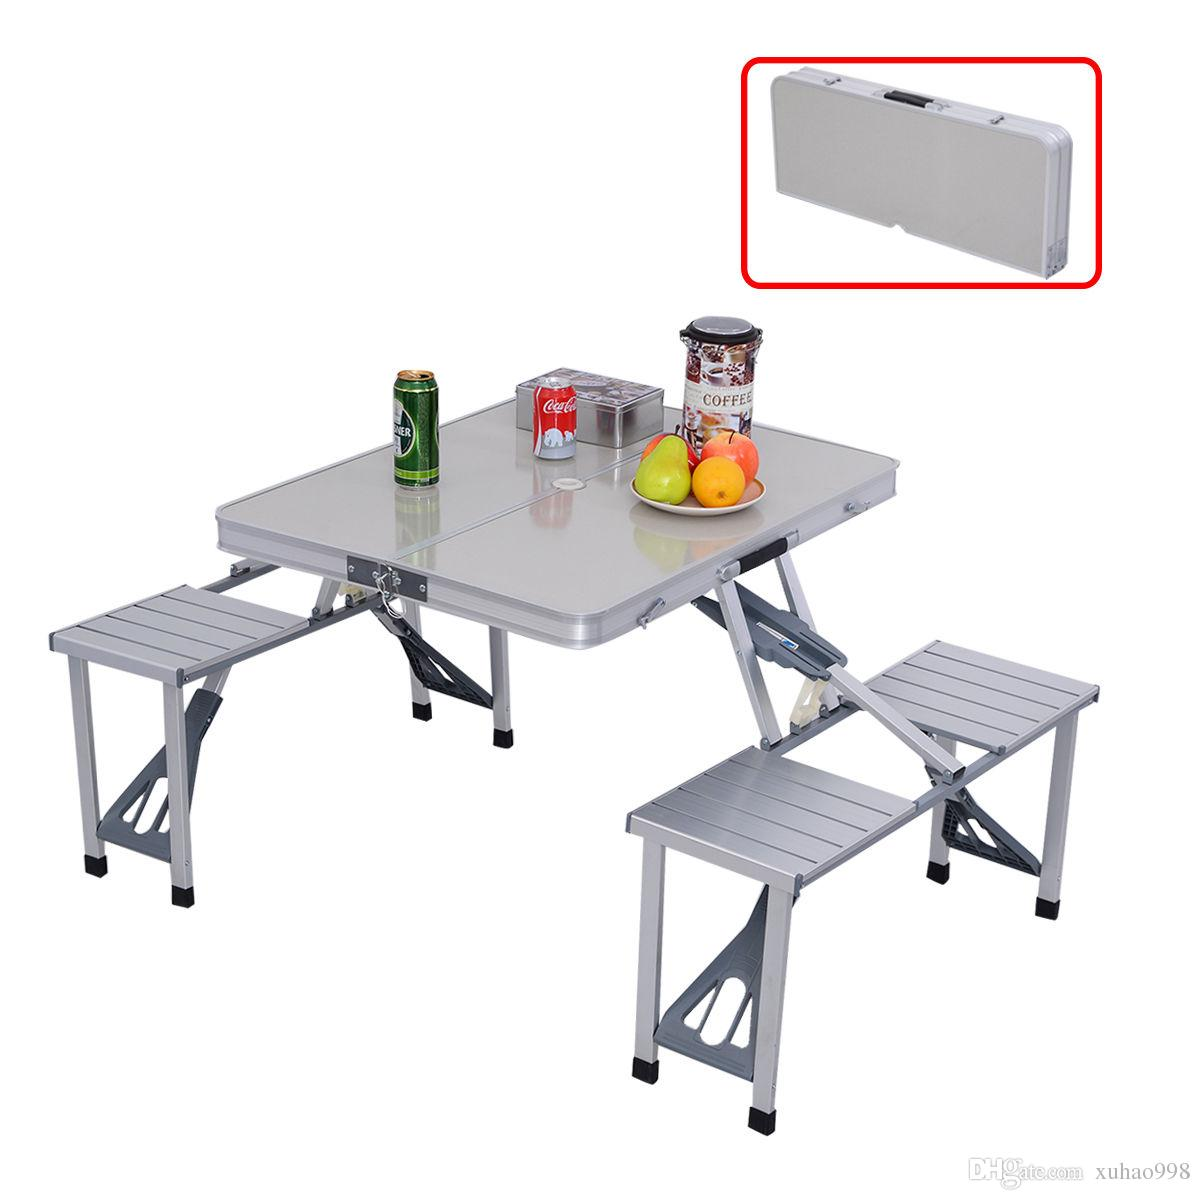 Marvelous Costway Outdoor Garden Aluminum Portable Folding Camping Picnic Table W 4 Seats Download Free Architecture Designs Scobabritishbridgeorg